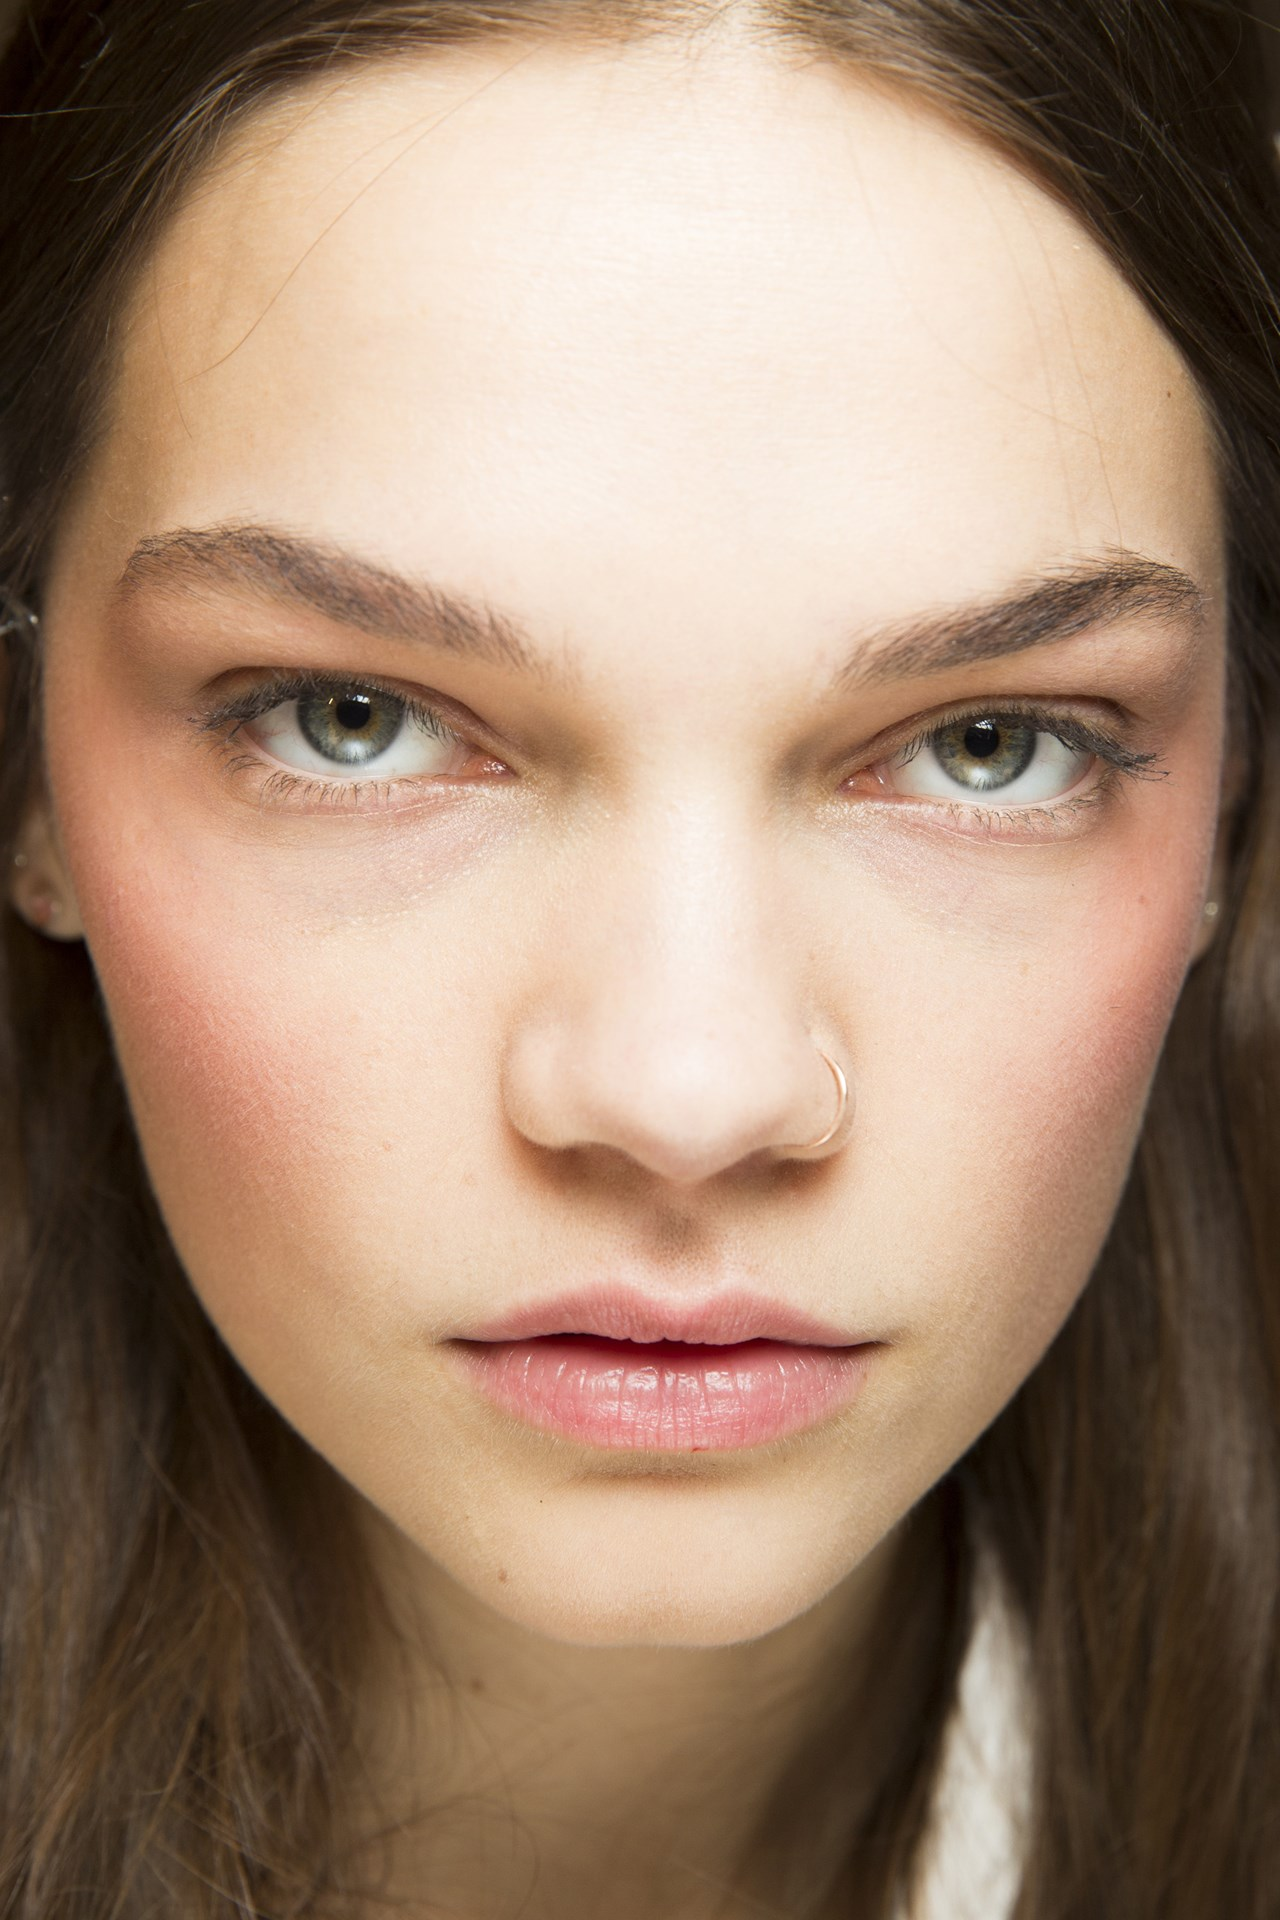 Gucci - Pat McGrath created an ethereal look at Gucci, buffing a coral hue onto the high points of the cheekbones for a new take on blush.